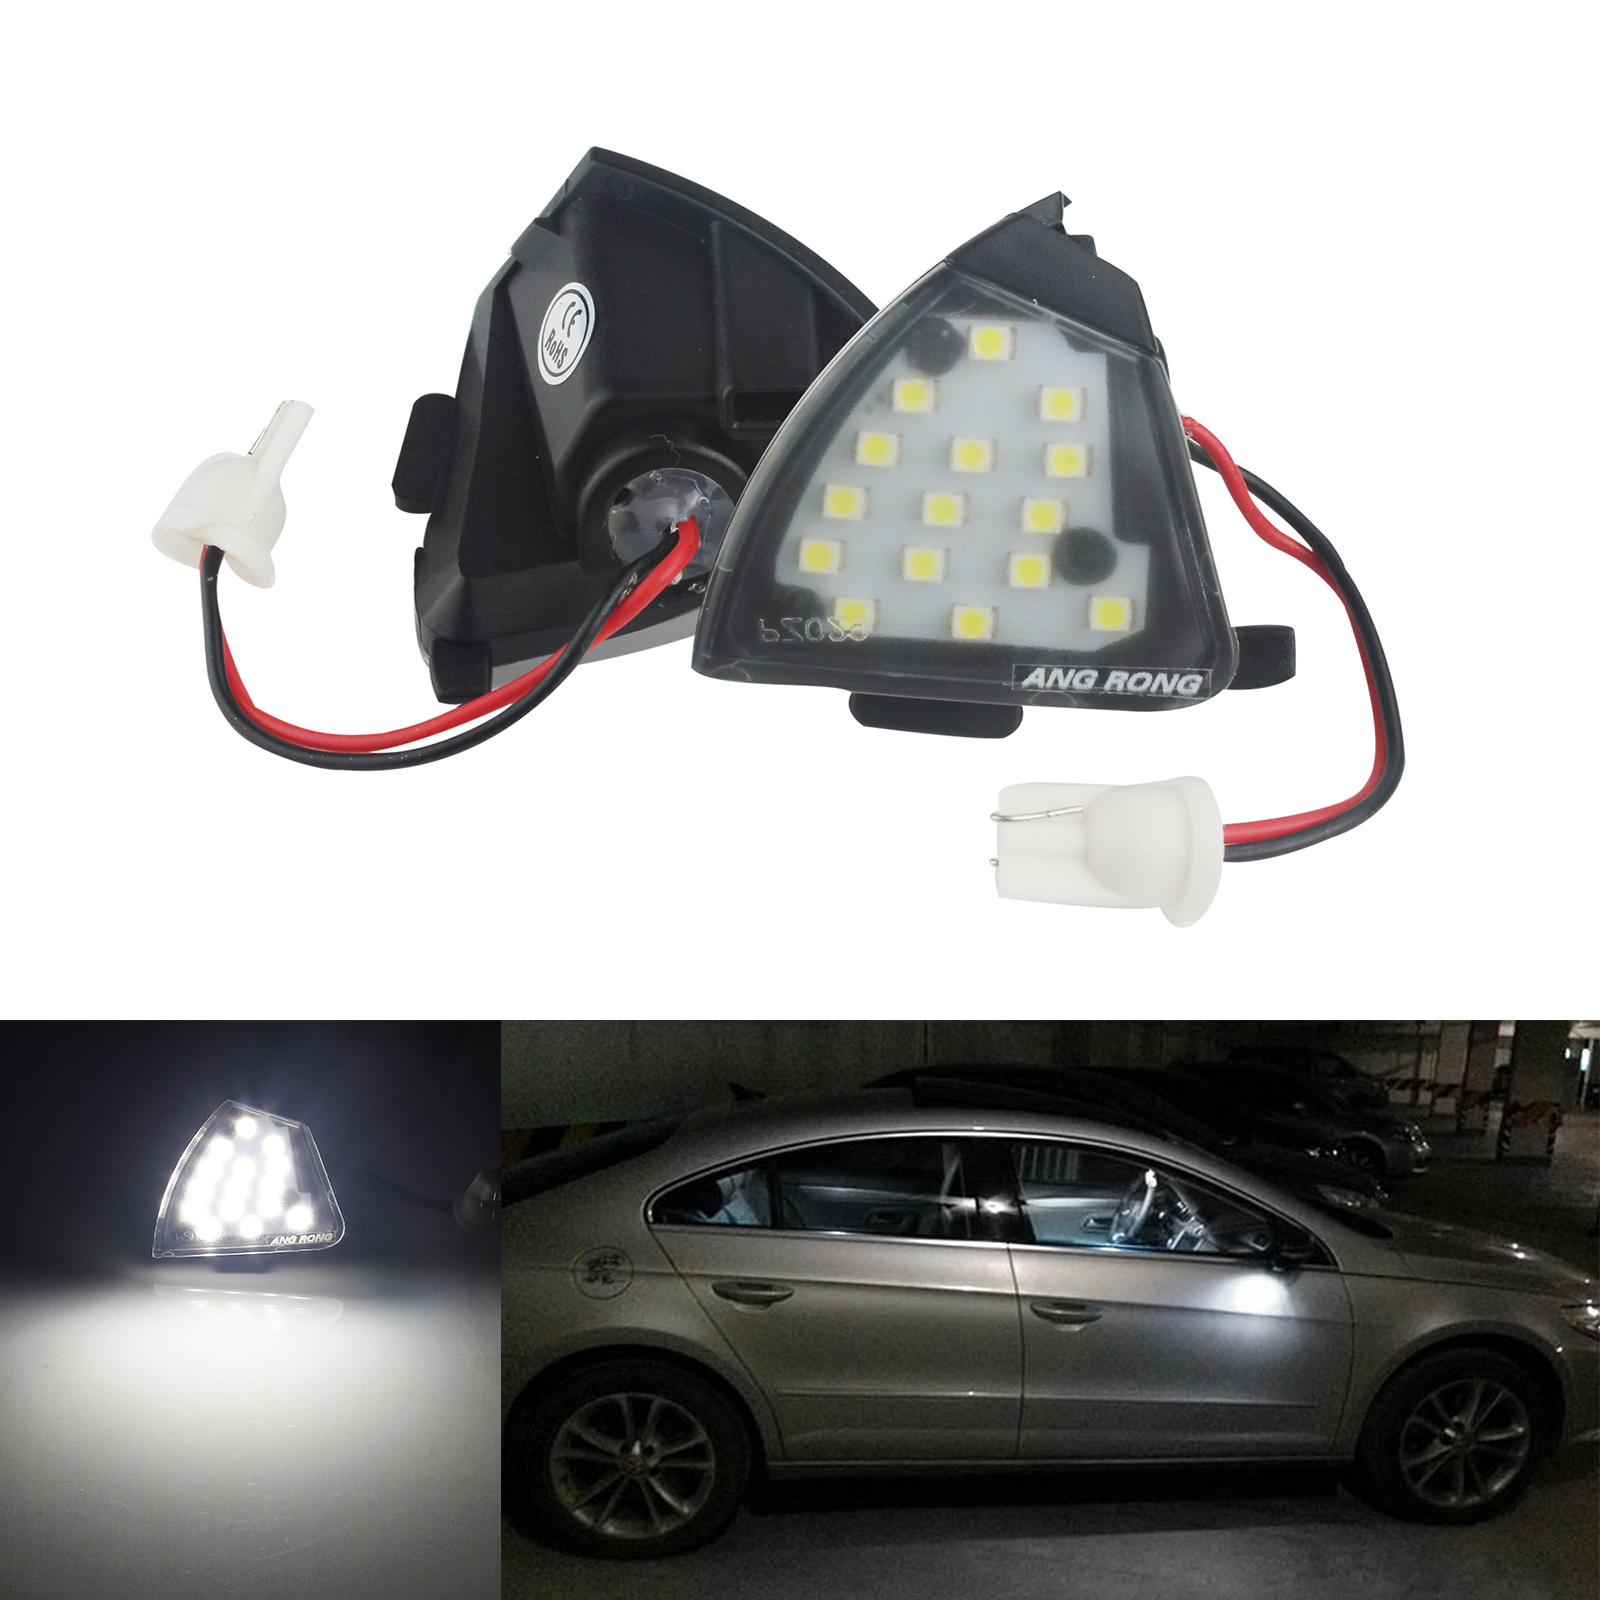 1 Pair White LED Under Side Mirror Puddle Lights For VW EOS GTi Jetta Passat